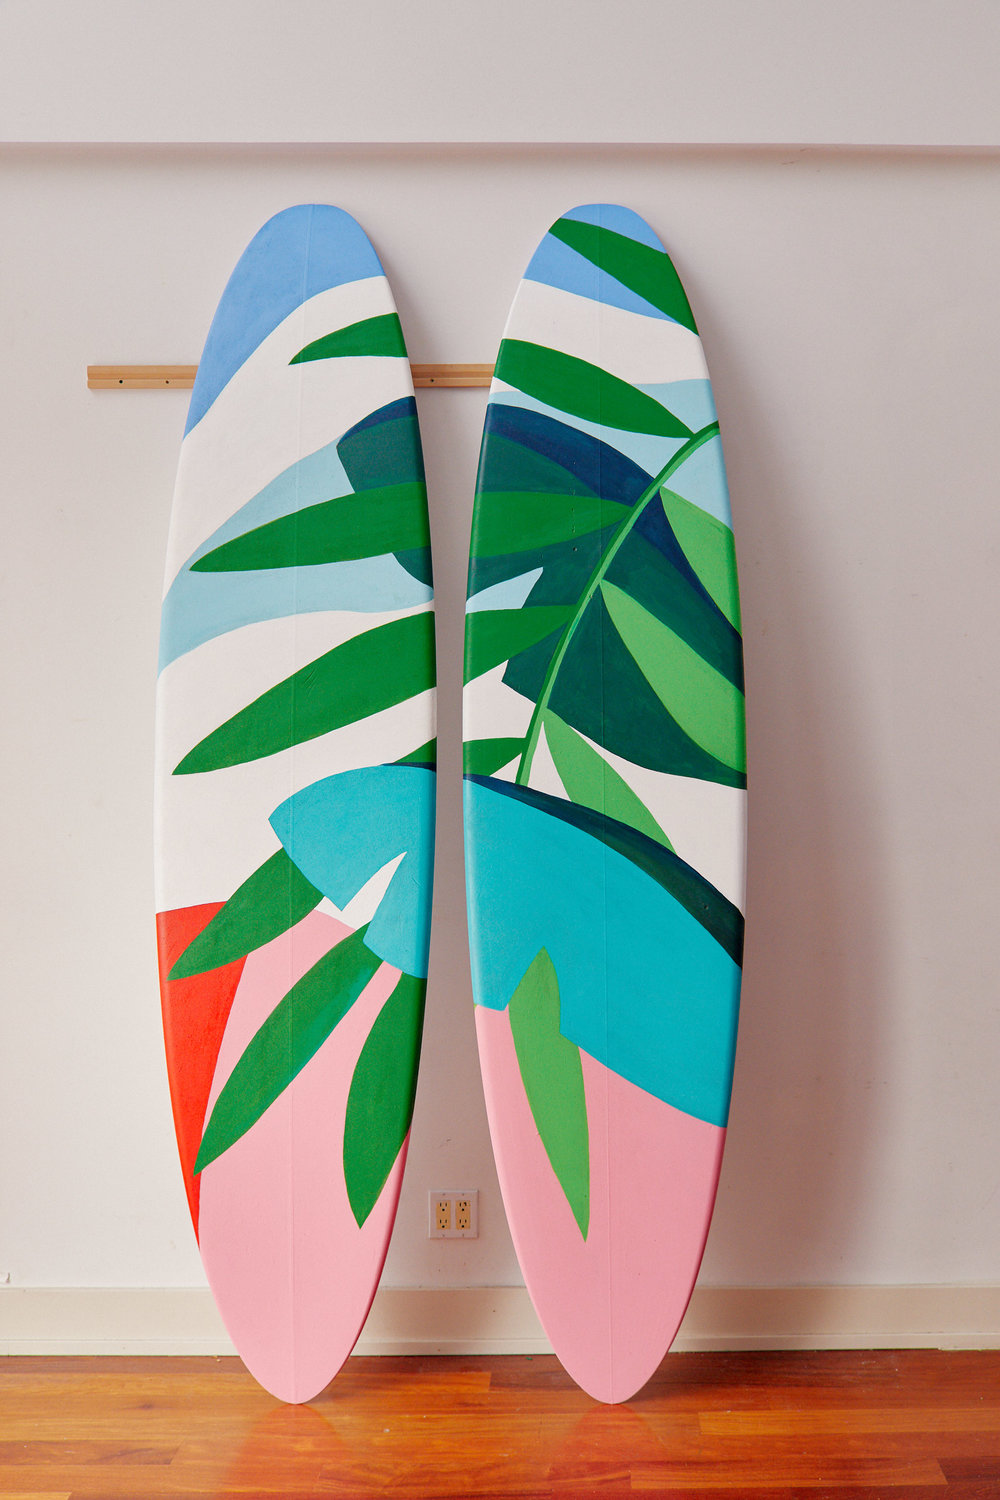 20171126_ShawnaX_W-Surfboards_0413.jpg